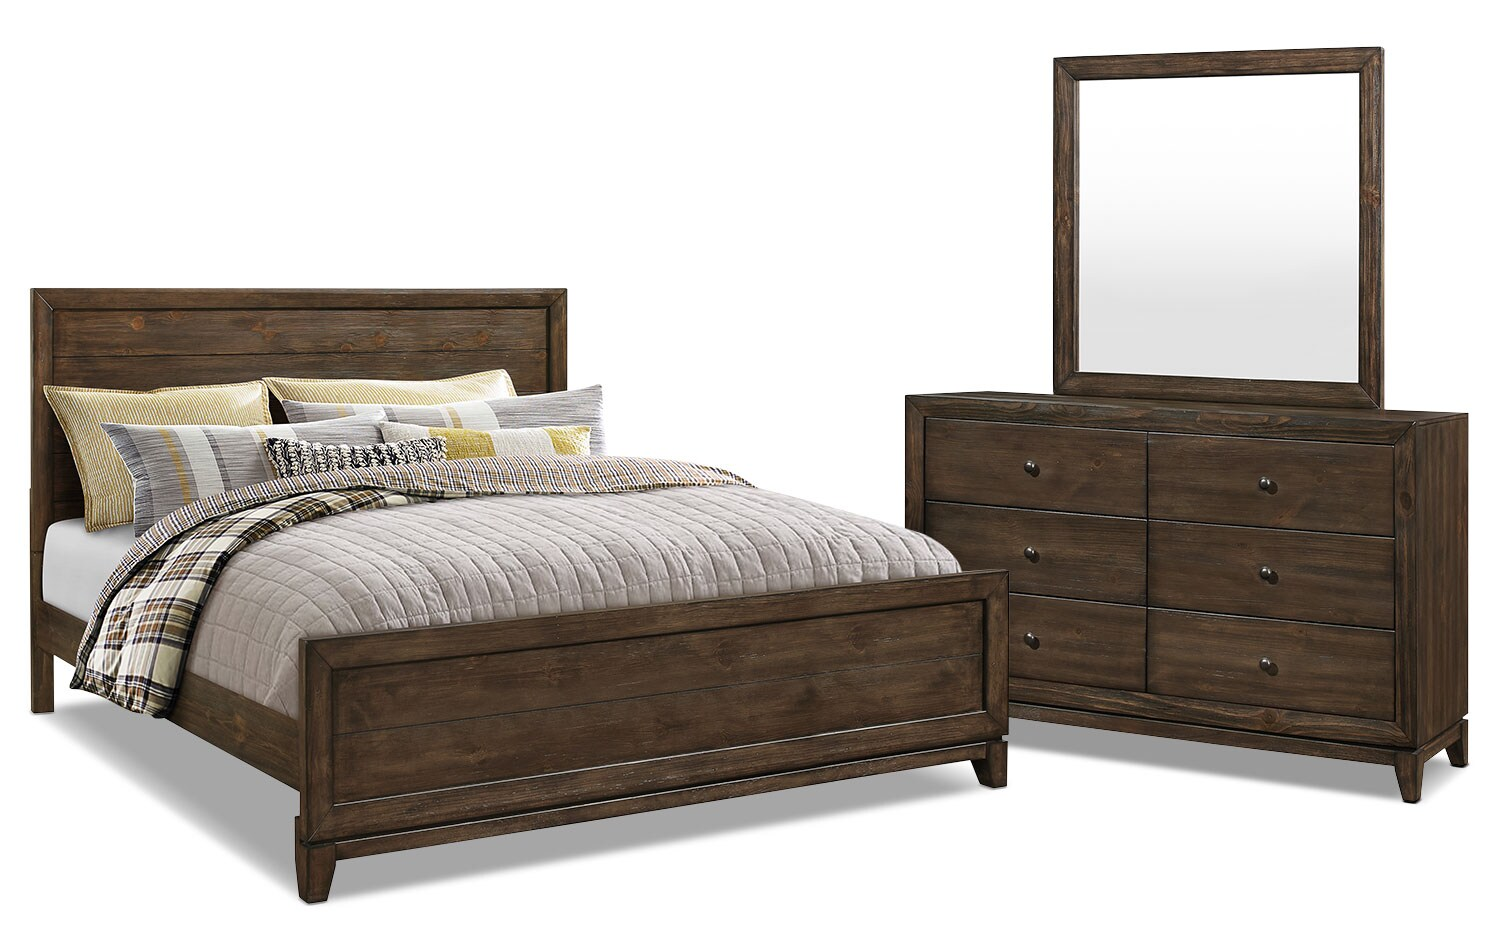 Tacoma 5 piece king bedroom package the brick for Bedroom furniture package deals